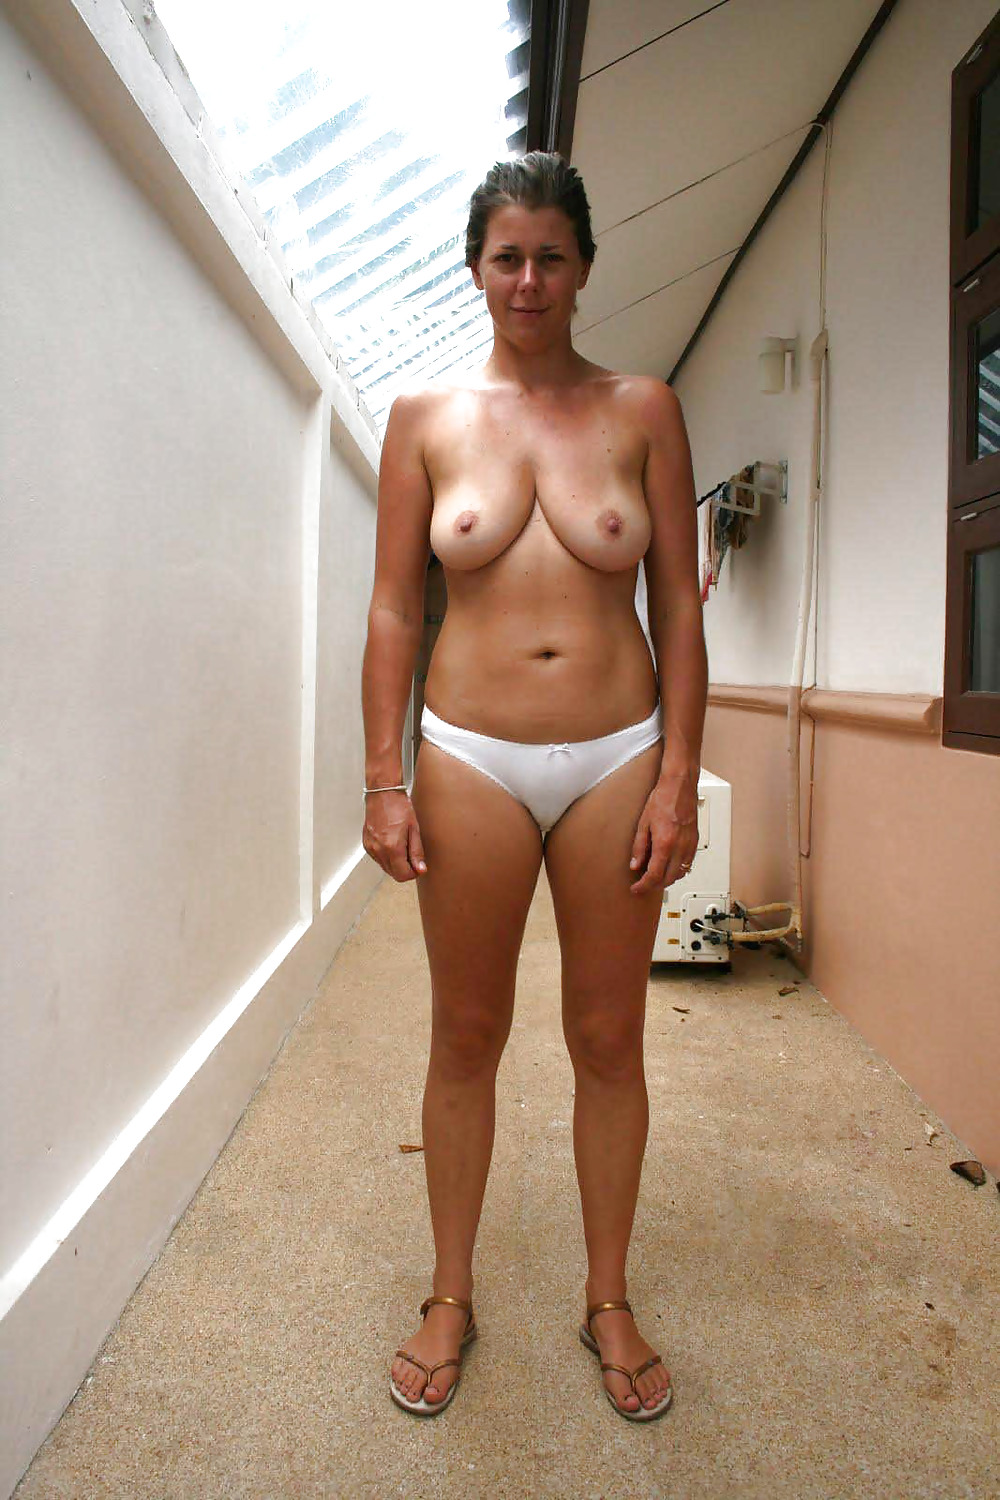 Nude amature women with great ties abs — 12